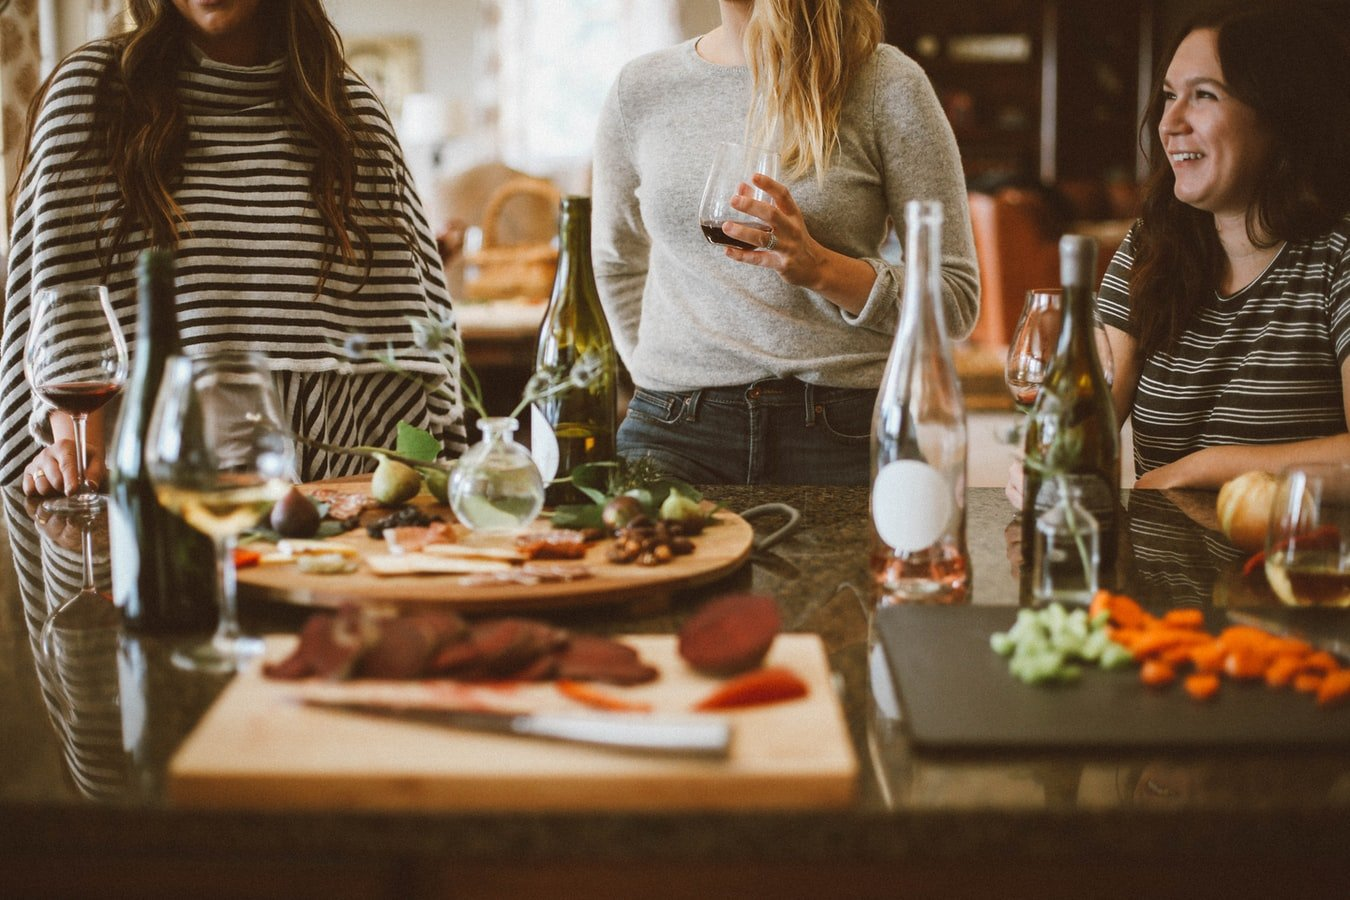 At the dinner party | Source: Unsplash